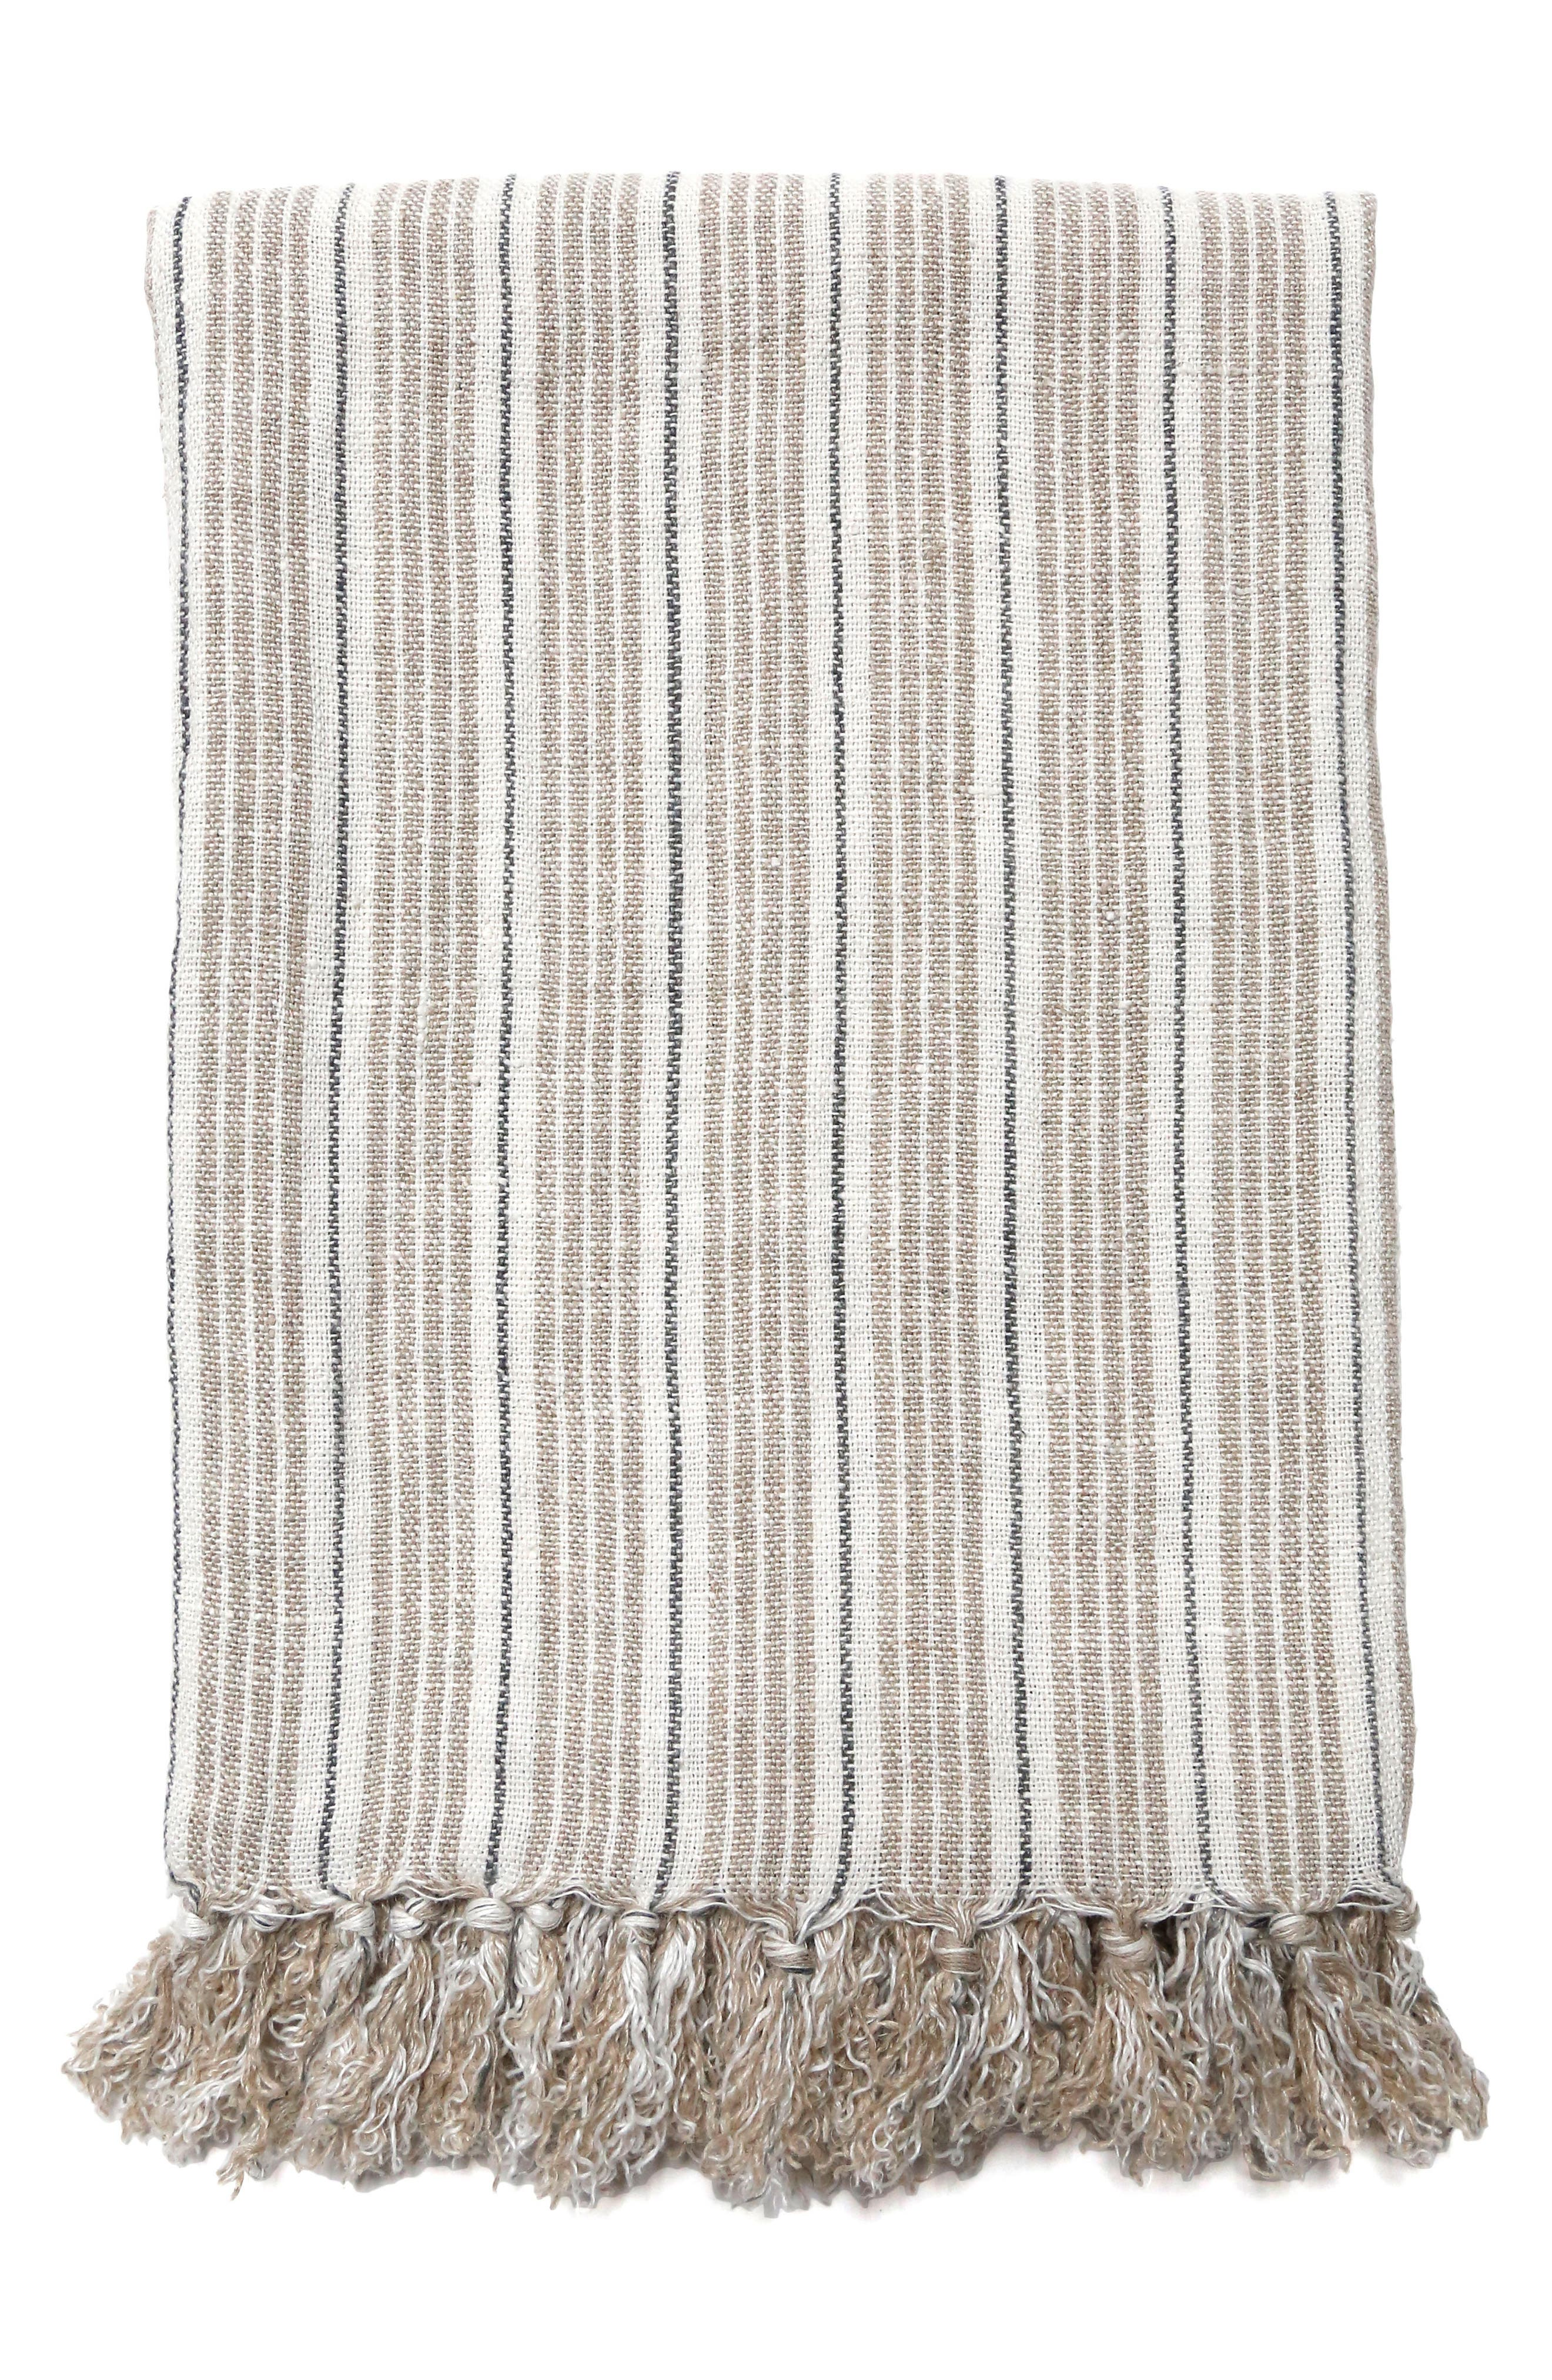 Hand-loomed from soft, heavy linen, this beautifully striped throw blanket is finished with thick, lush tassels. Style Name: Pom Pom At Home Newport Throw Blanket. Style Number: 5437461. Available in stores.